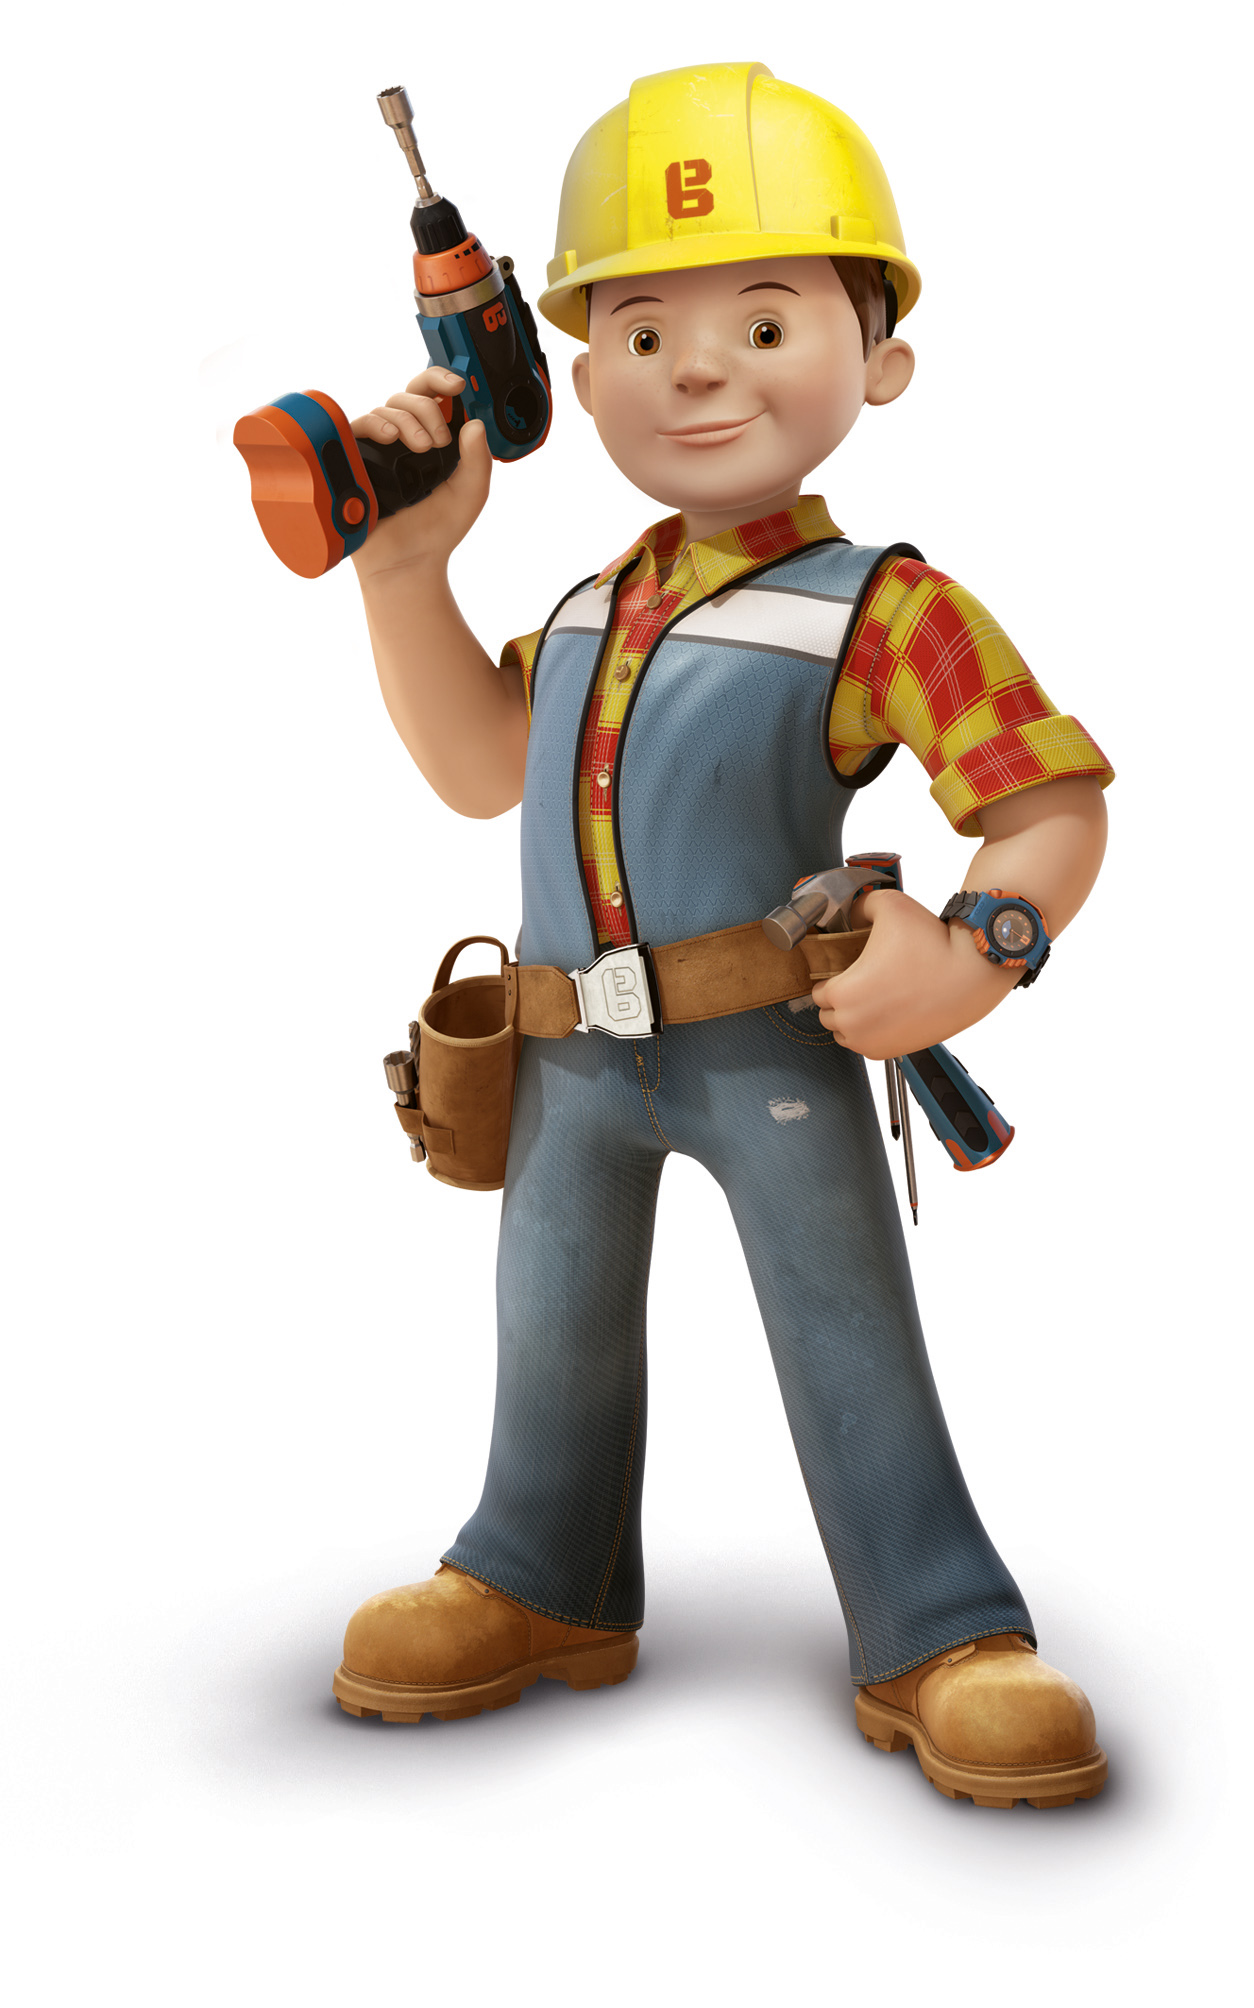 Cartoon City 3d Live Wallpaper Bob The Builder Is Back With Brand New Content Bringing